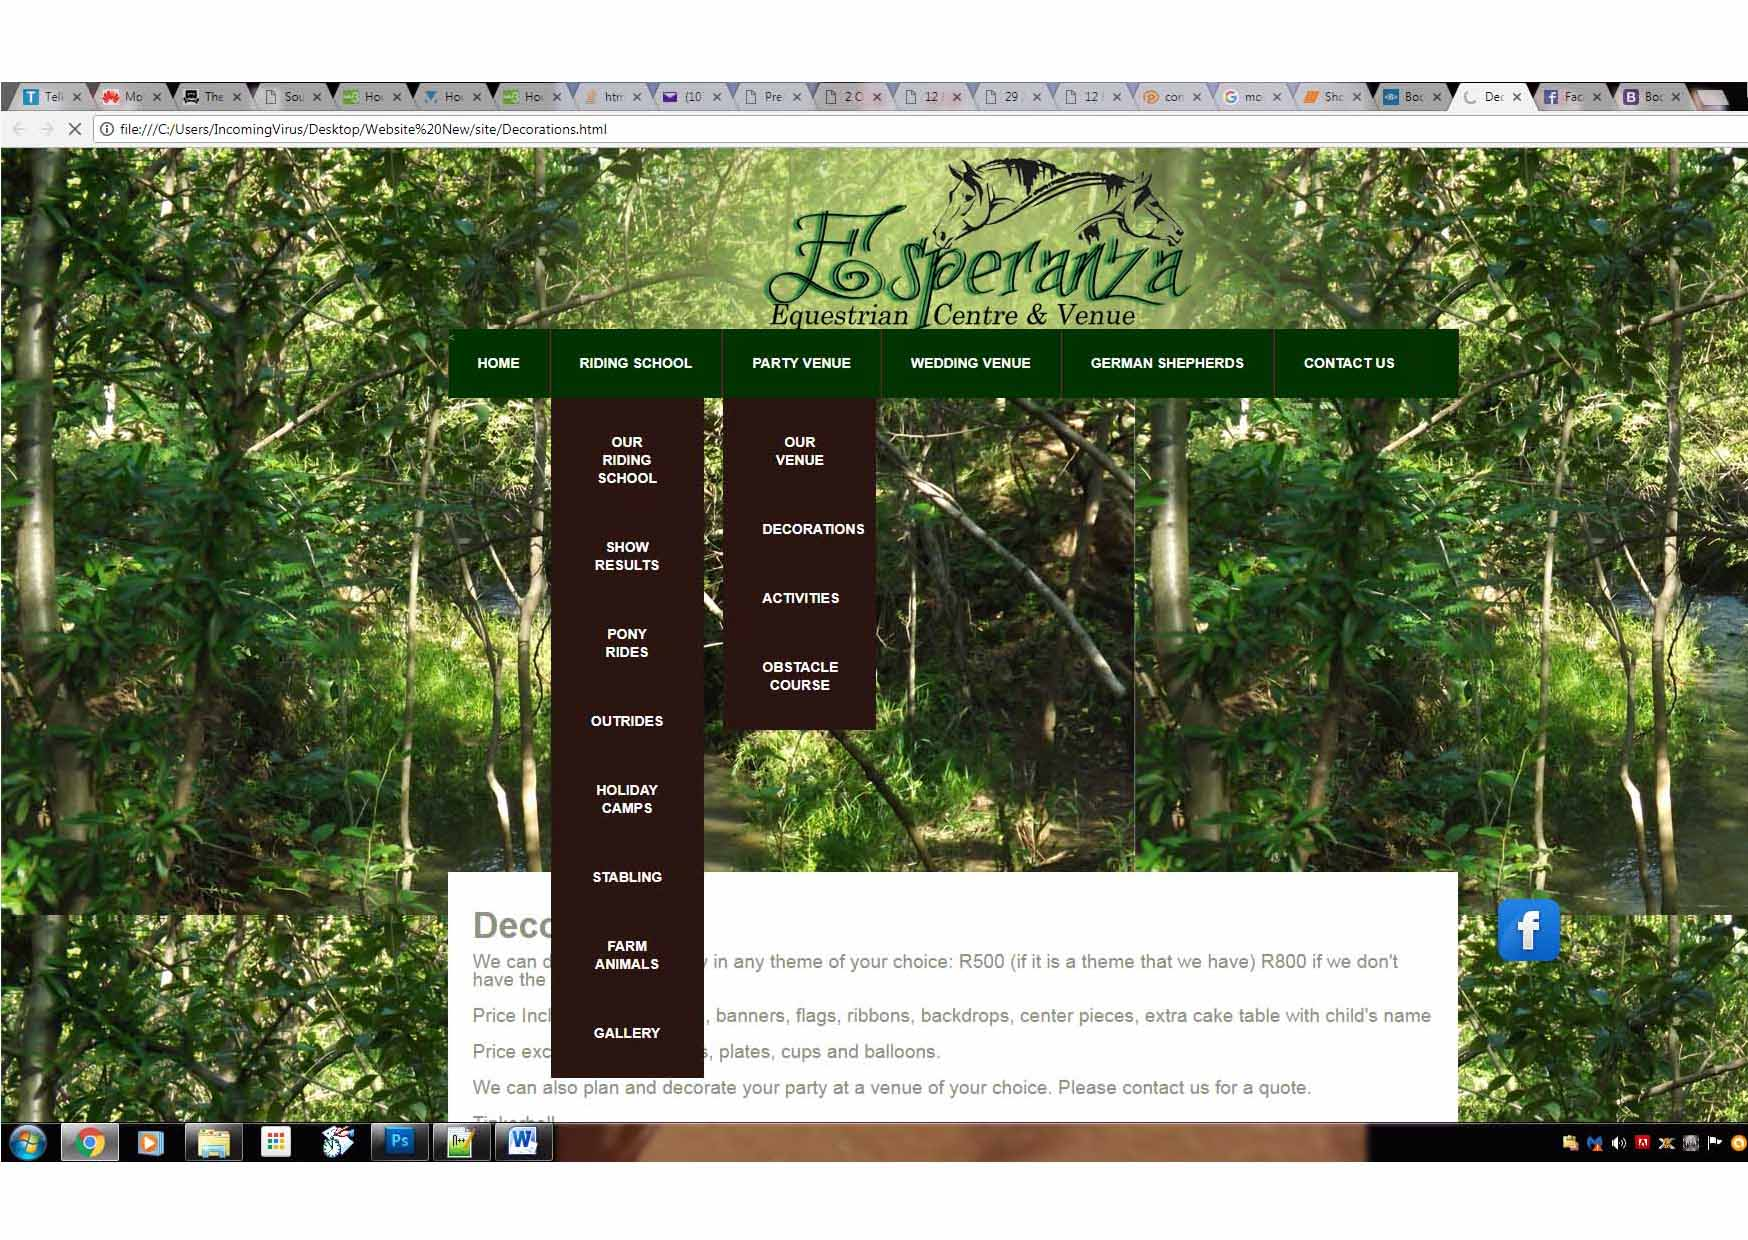 How to add multiple images within a modal - HTML/XHTML